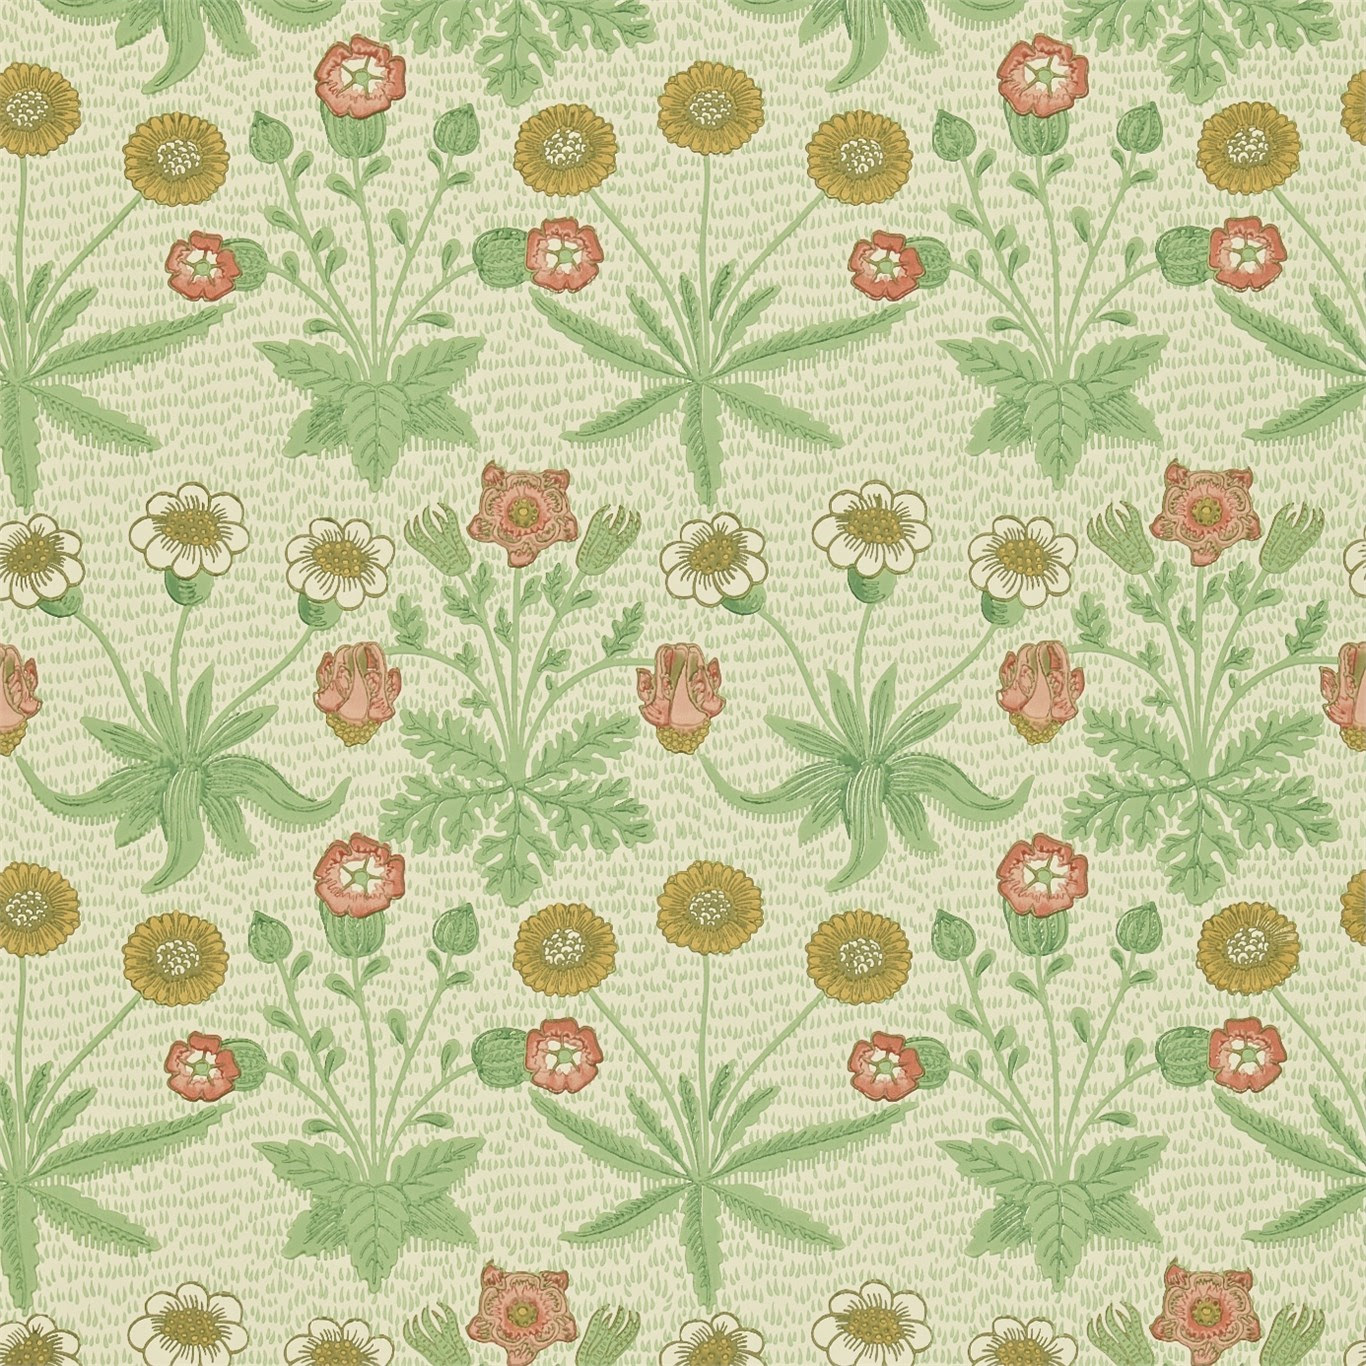 Daisy Bars  Pubs Floral Traditional Victorian Arts  Crafts William Morris Bars  Pubs Floral